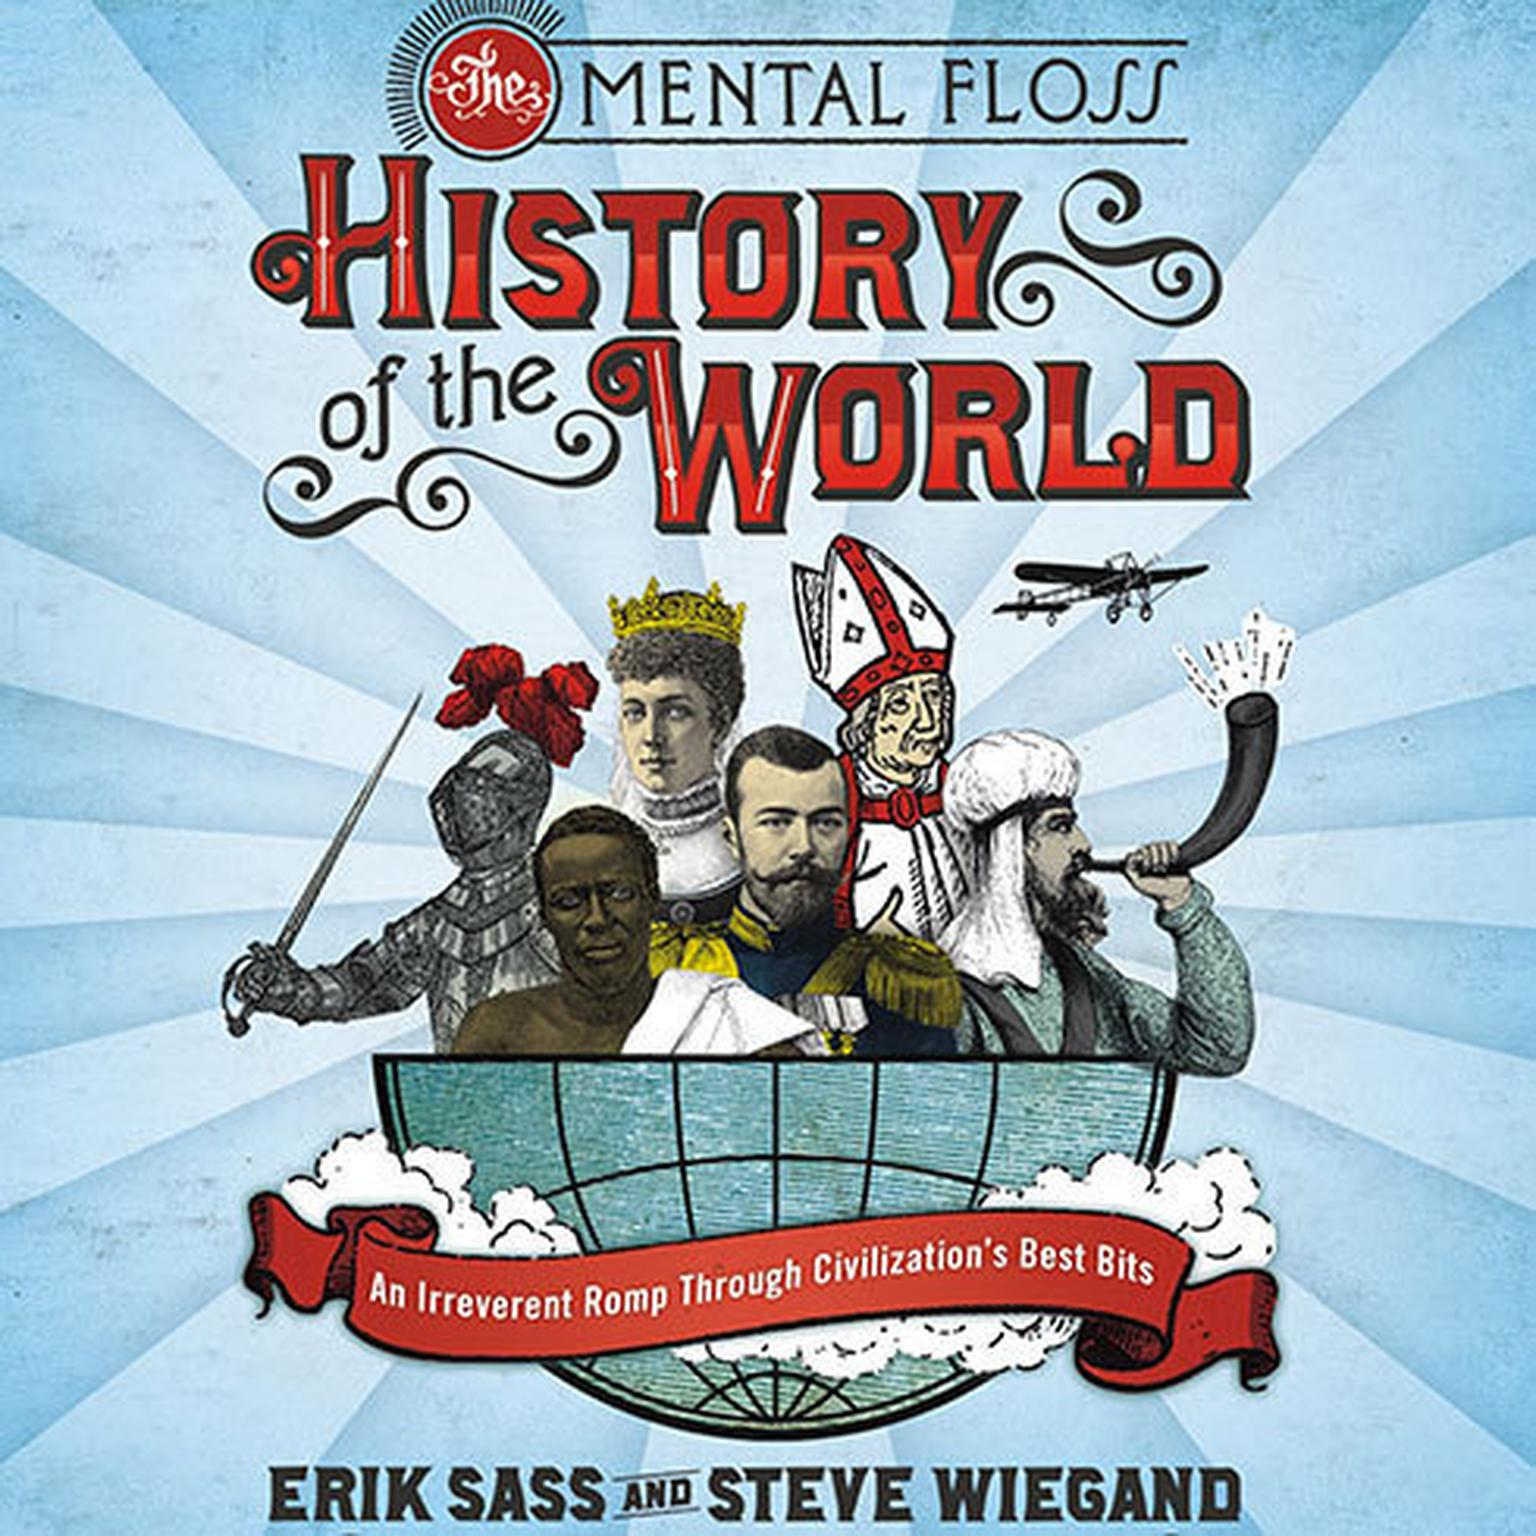 Printable The Mental Floss History of the World: An Irreverent Romp Through Civilization's Best Bits Audiobook Cover Art